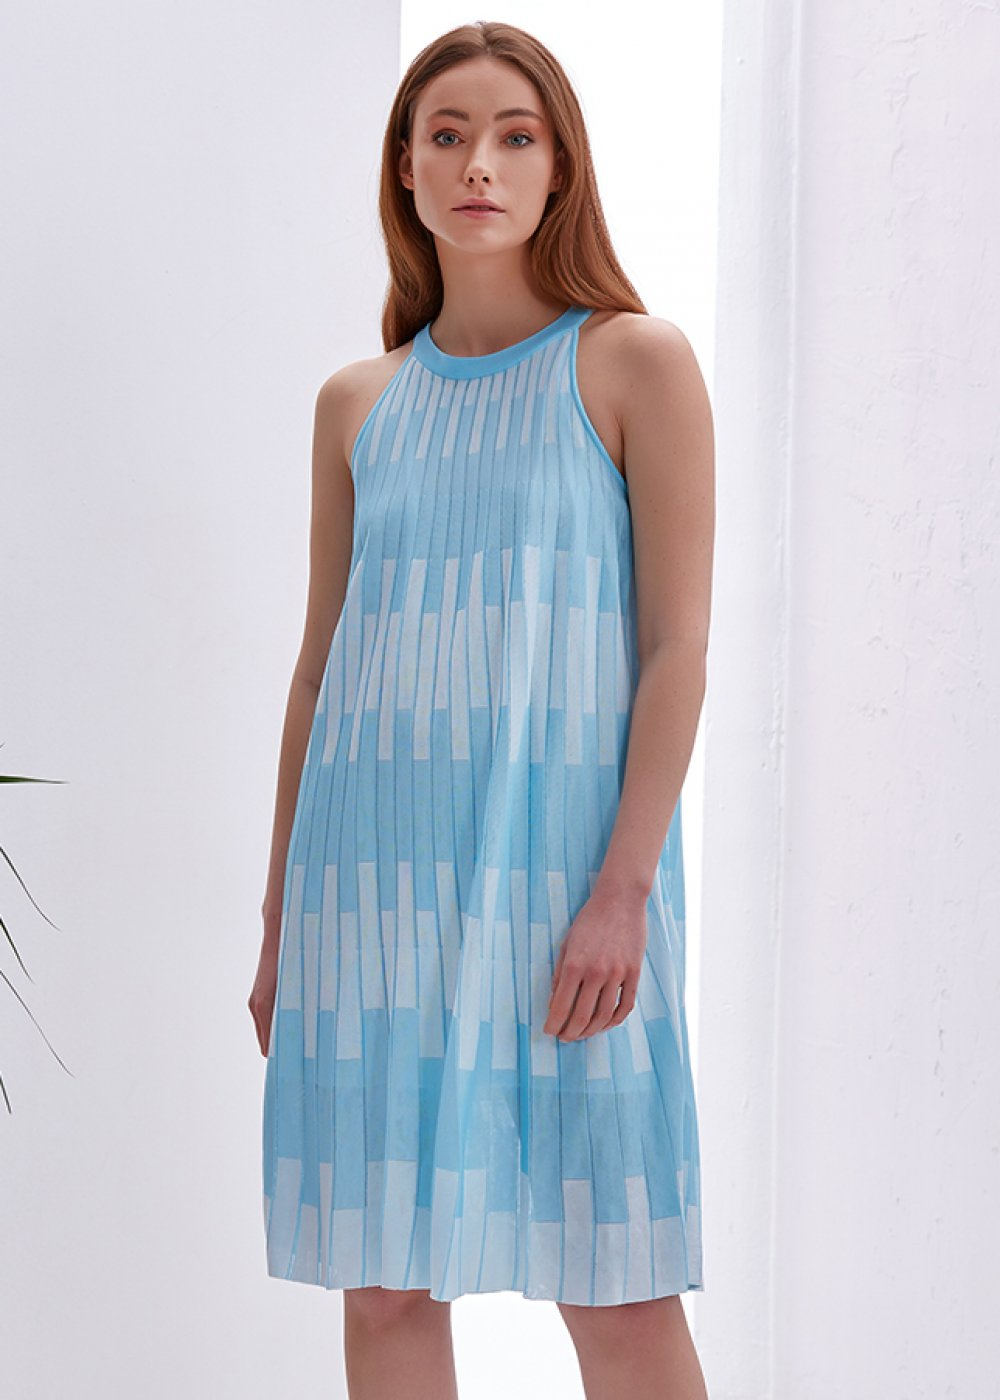 PATTERNED BLUE KNITTED DRESS